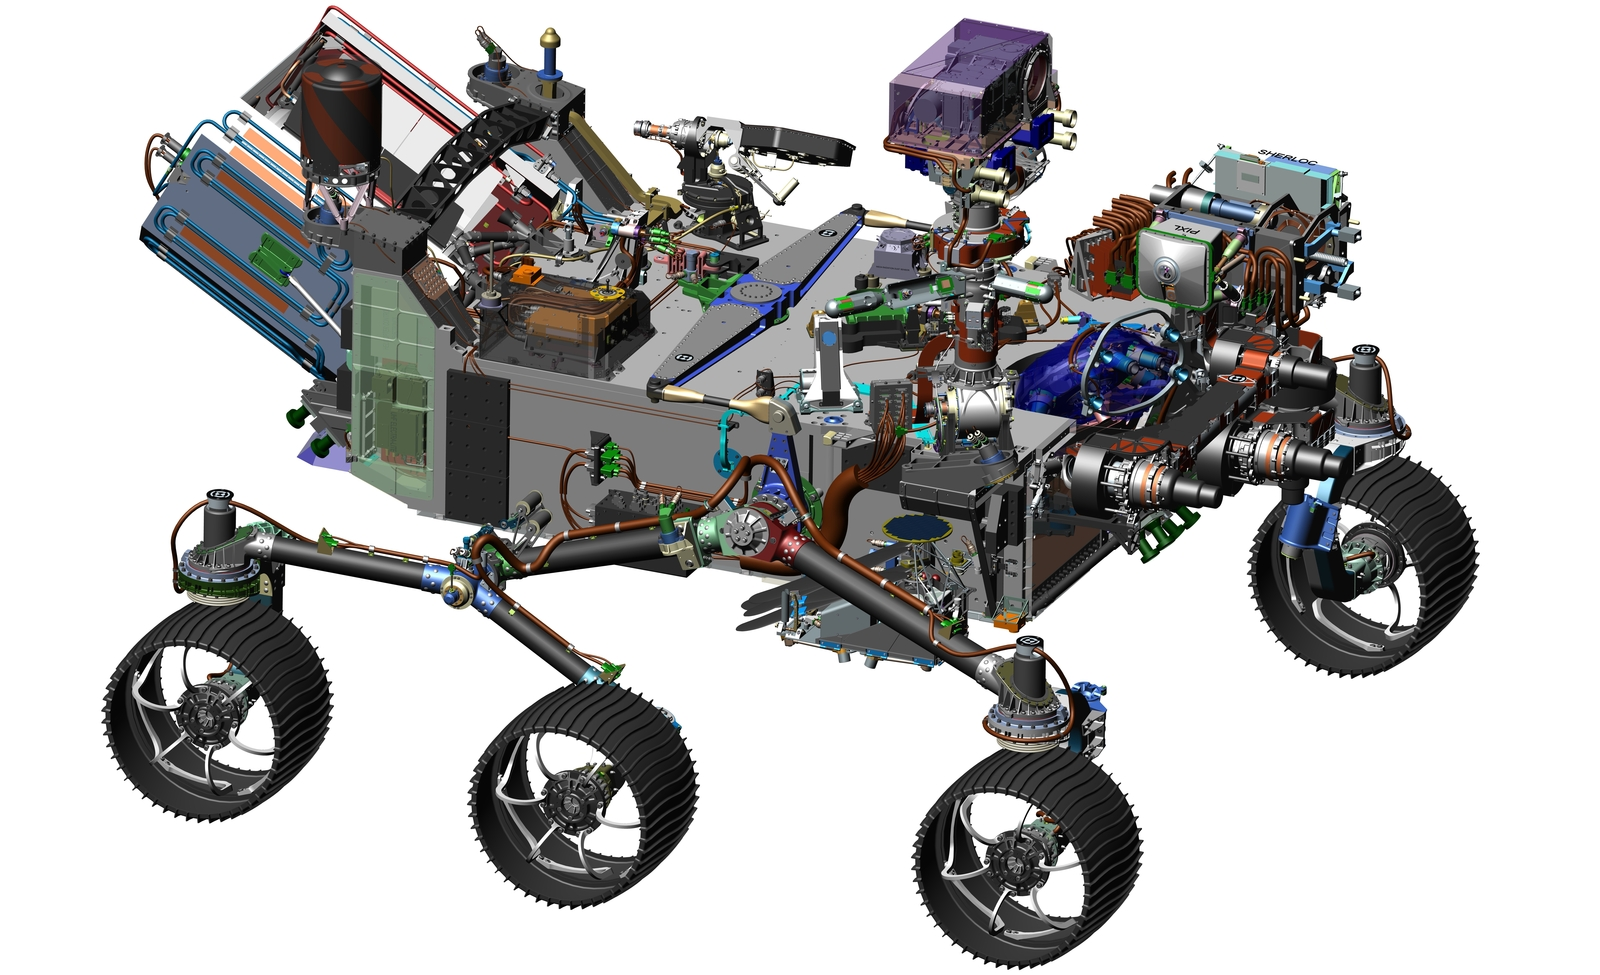 This 2016 image comes from computer-assisted-design work on NASA's 2020 Mars rover. The design leverages many successful features of NASA's Curiosity rover, which landed on Mars in 2012, but it adds new science instruments and a sampling system to carry out the new goals for the 2020 mission